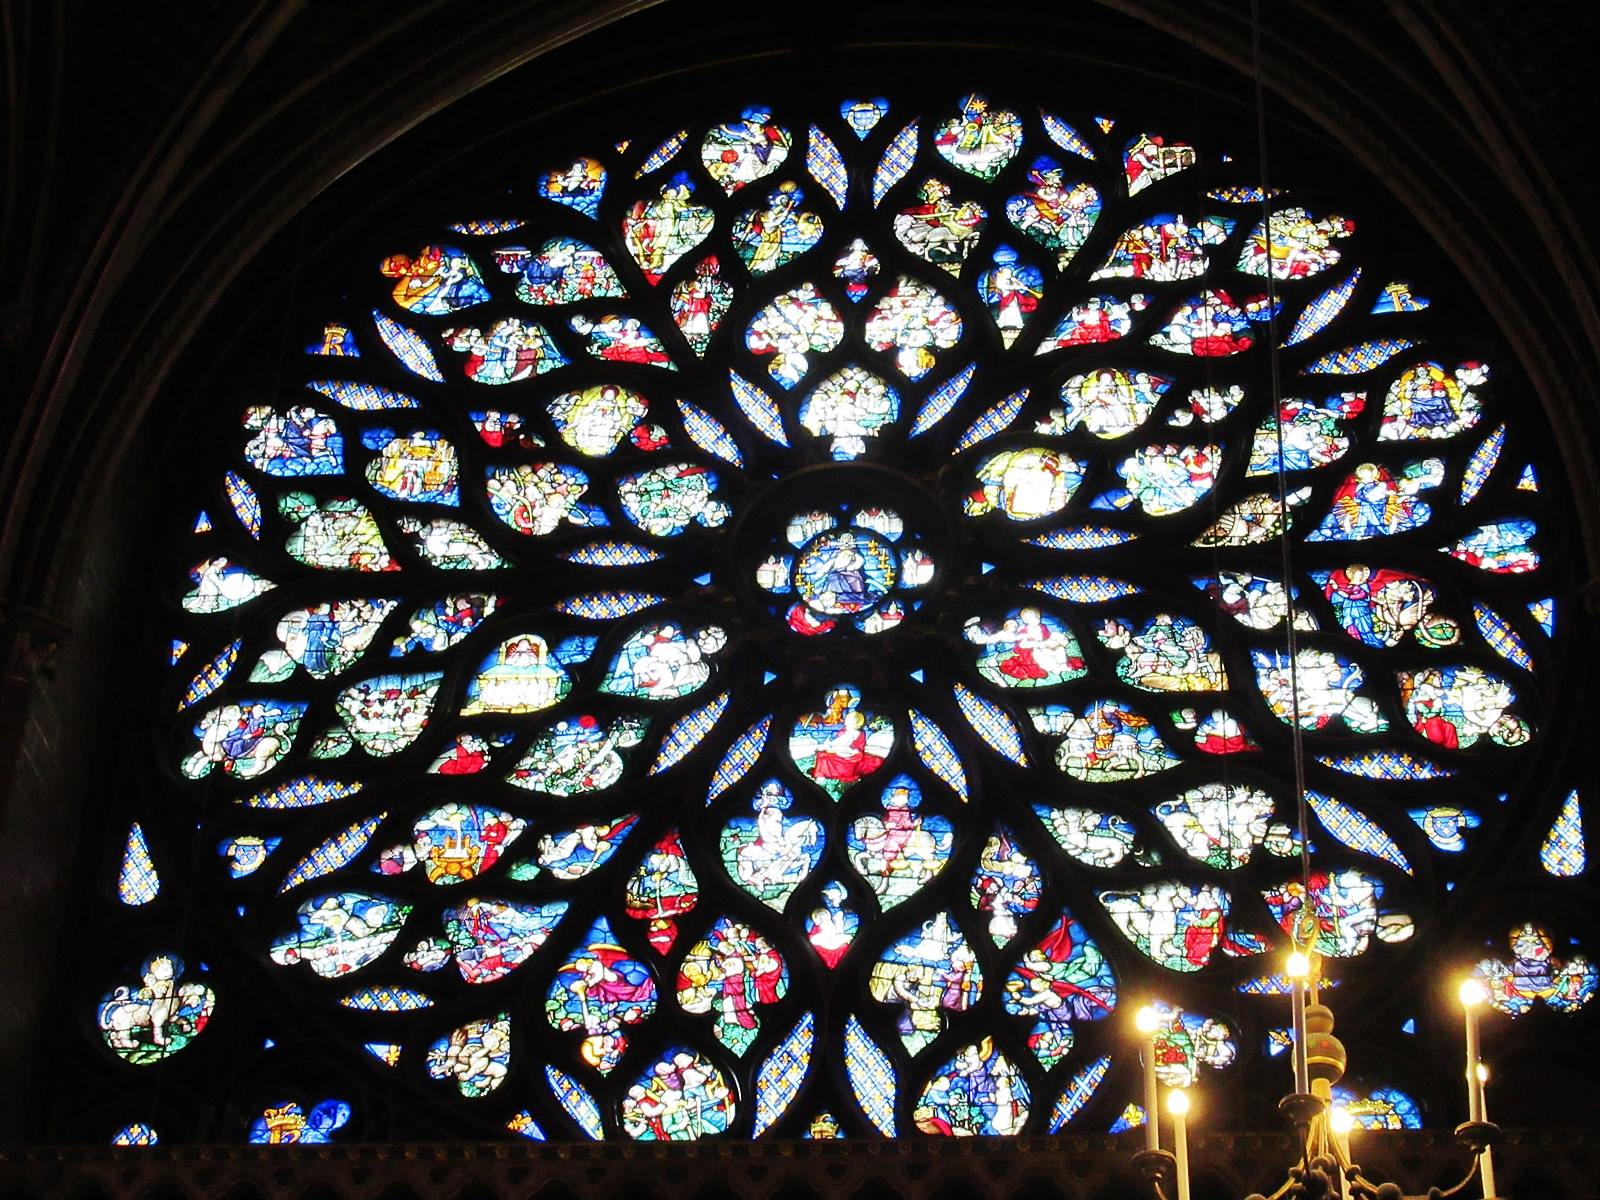 La sainte chapelle paris cite chateletsainte chapelle paris 4